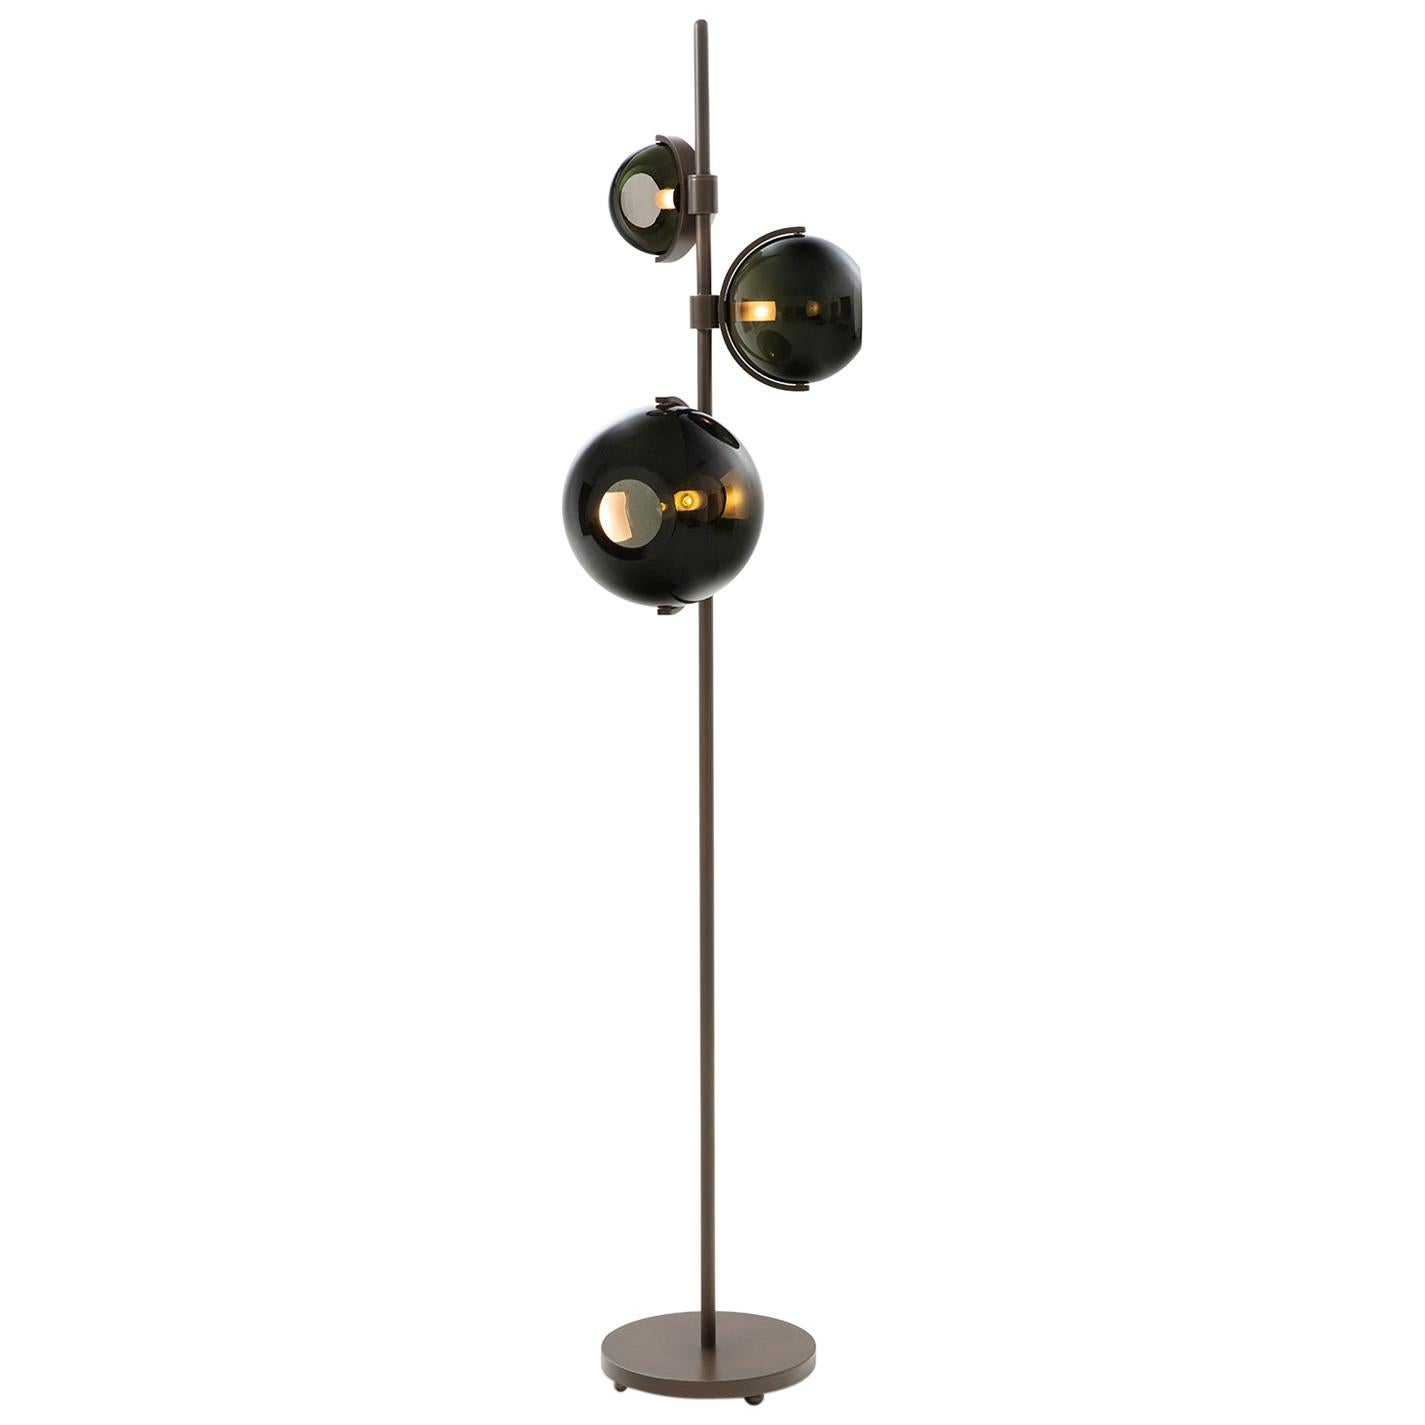 HOLLY HUNT Another Day Floor Lamp with Brass & Glass by Damien Langlois-Meurinne